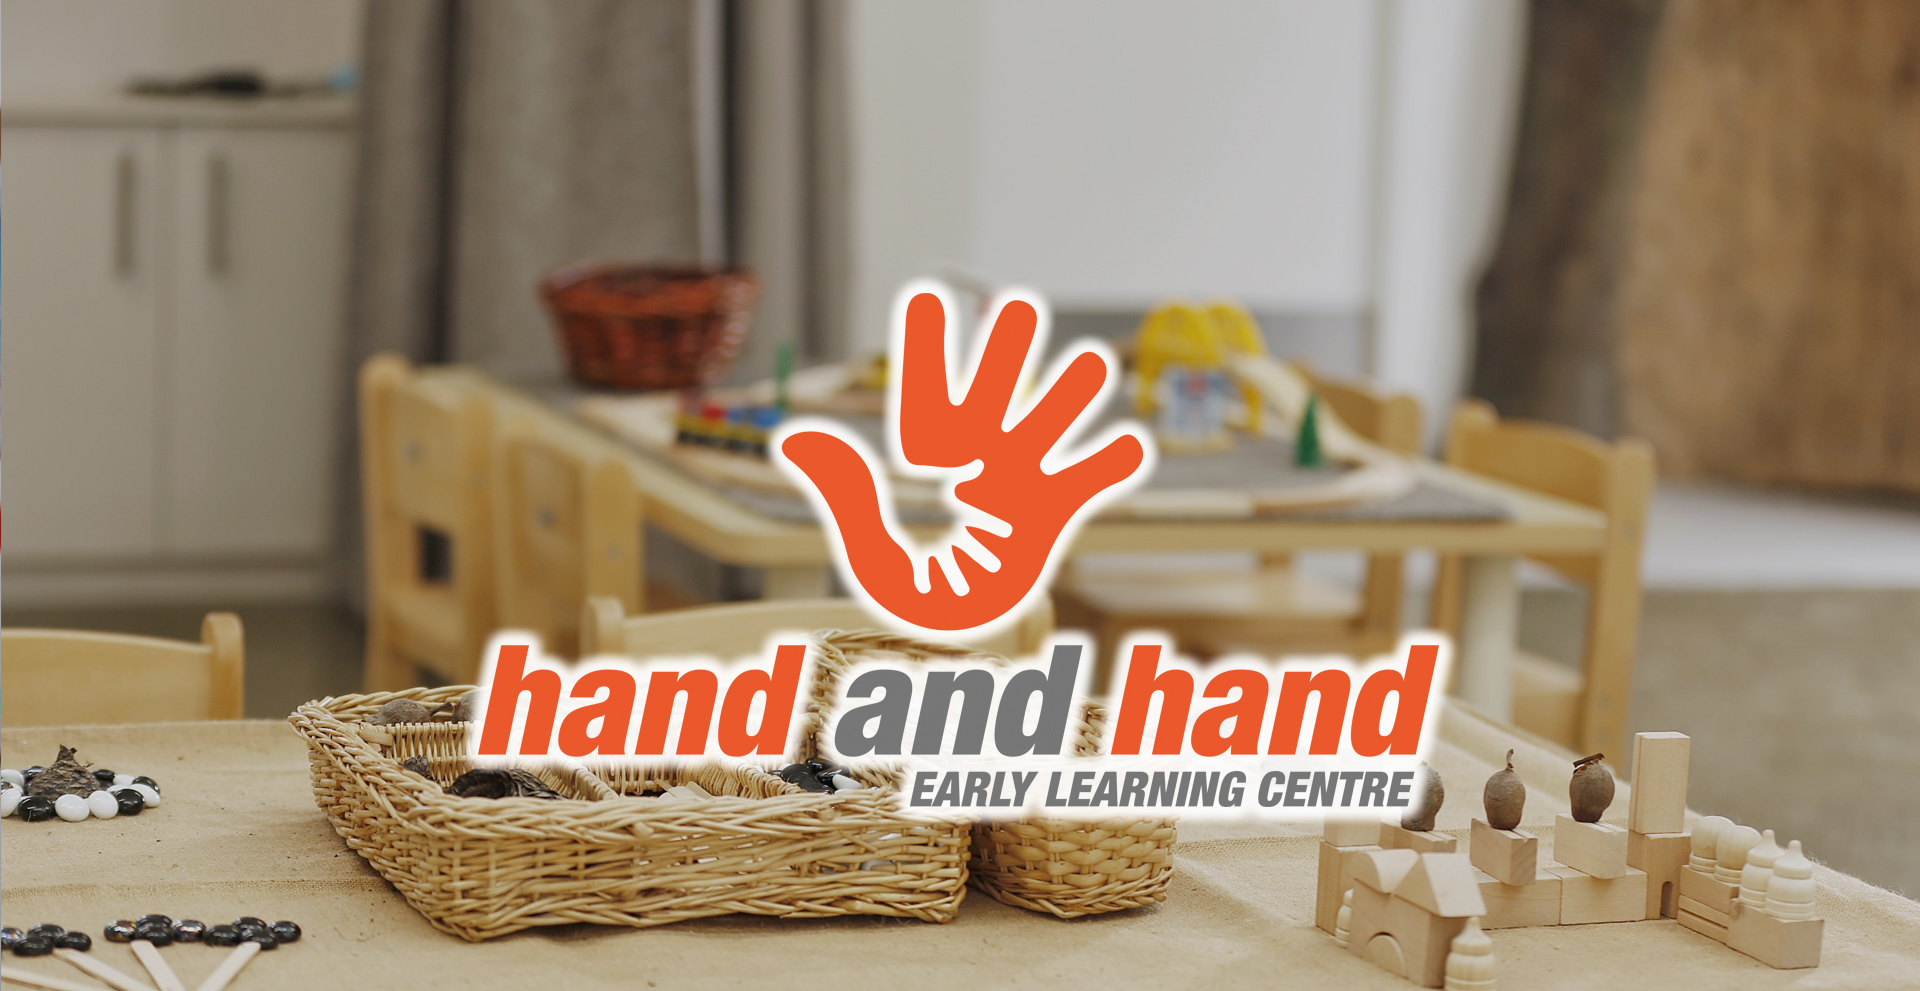 2019_06_13_handandhand-early-learning-centre-auckland-flat-bush